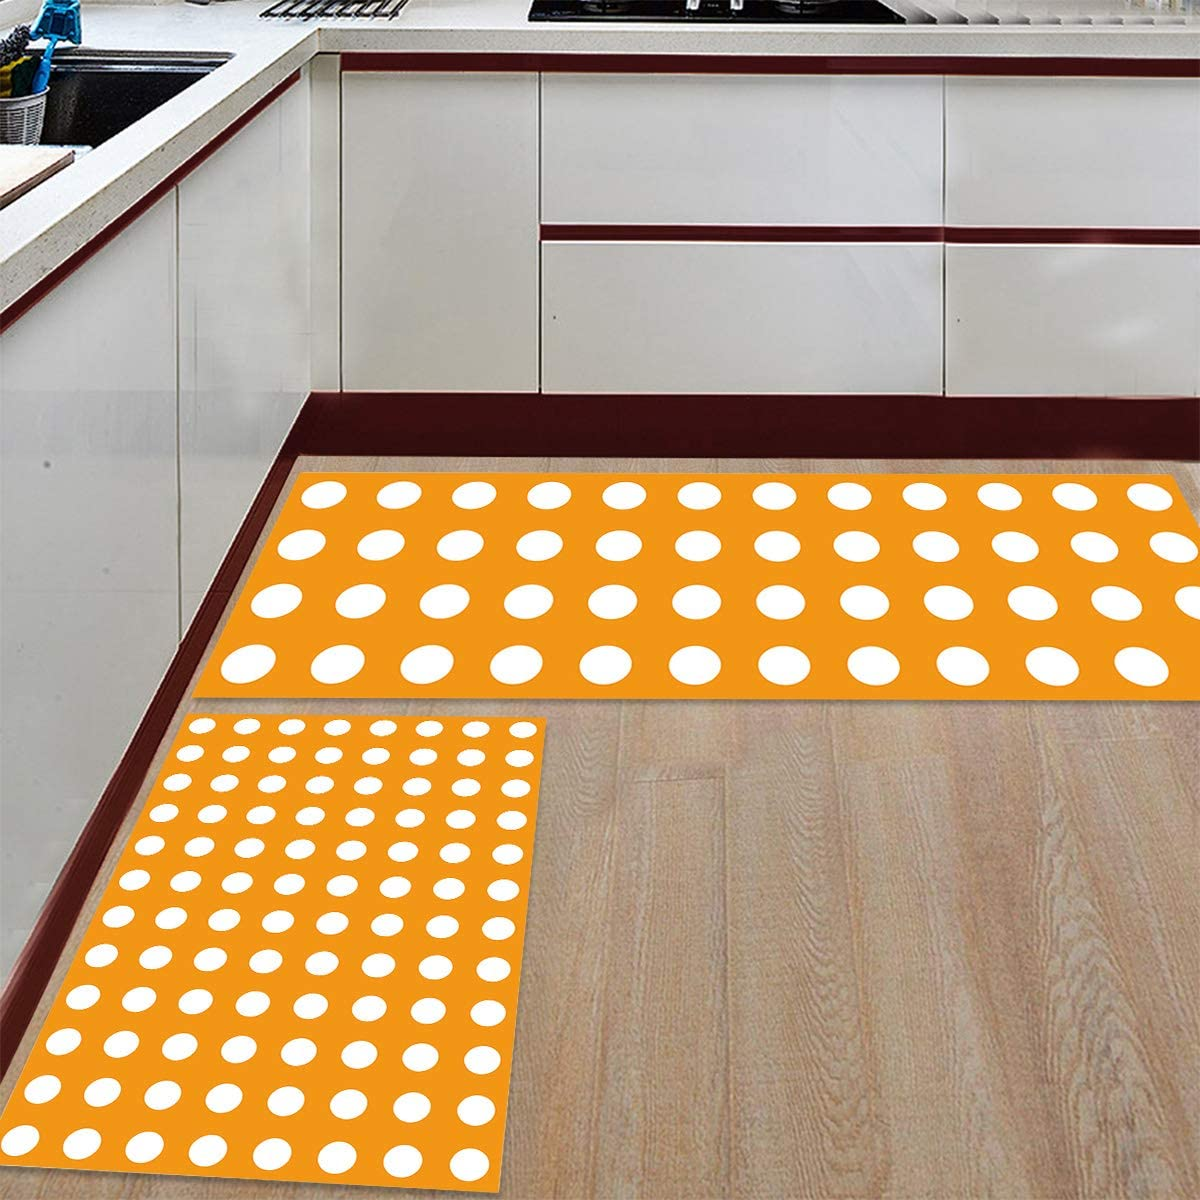 Advancey 2 Pieces All items in the store Max 75% OFF Anti-Slip Kitchen Patte Mats Wave Point Simple